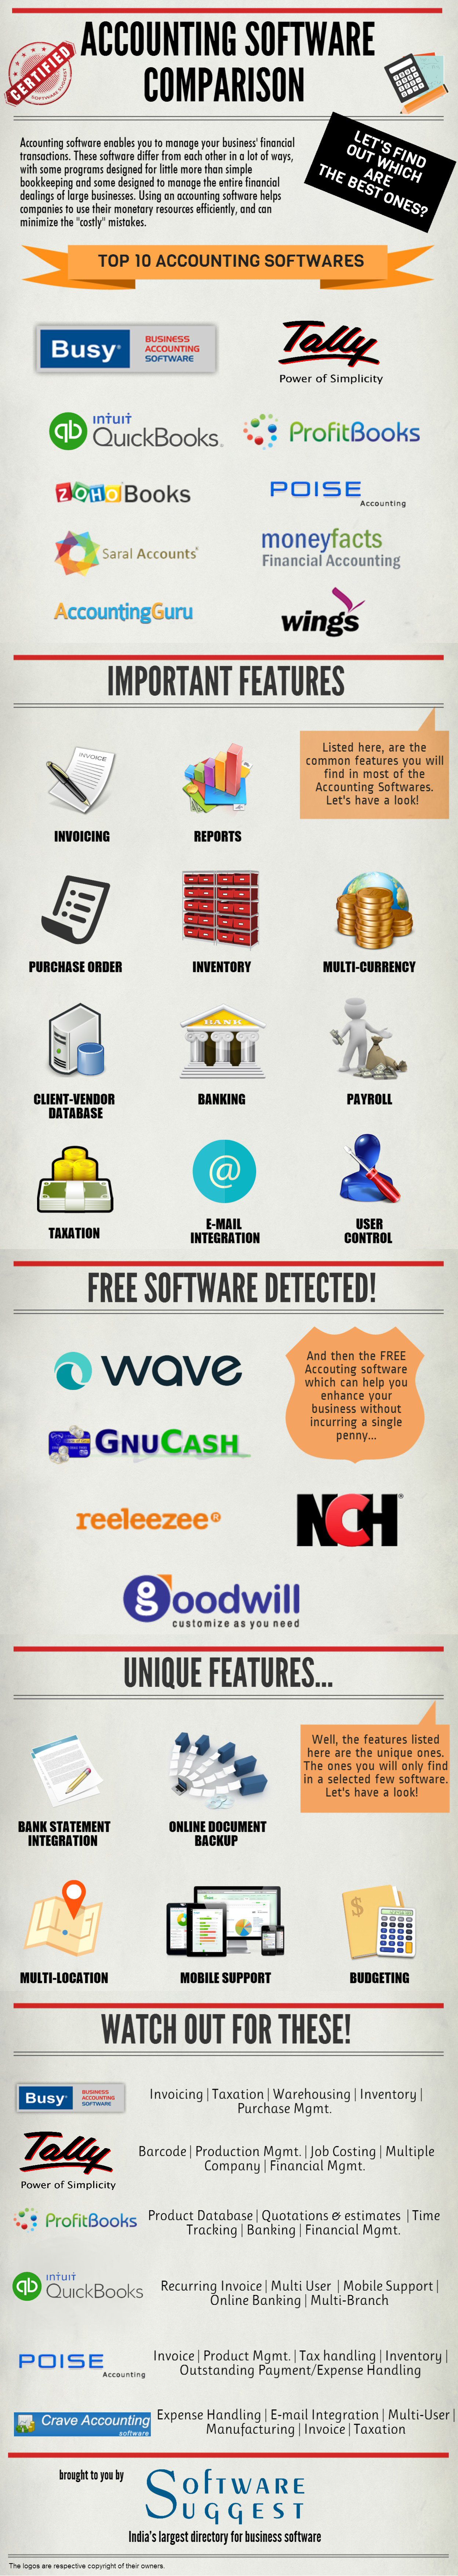 Top Business Accounting Software Comparison